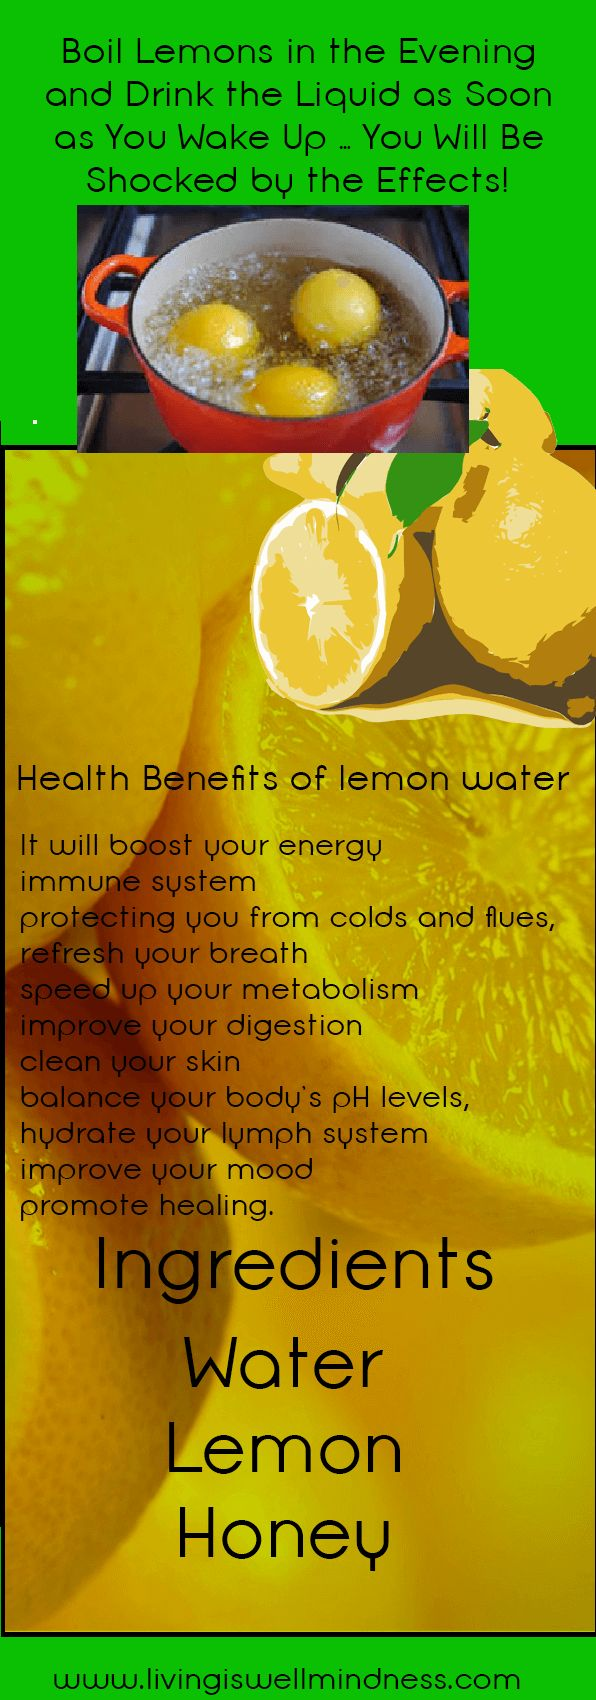 If you begin your day with a glass of lemon water, you will help every system in your body work